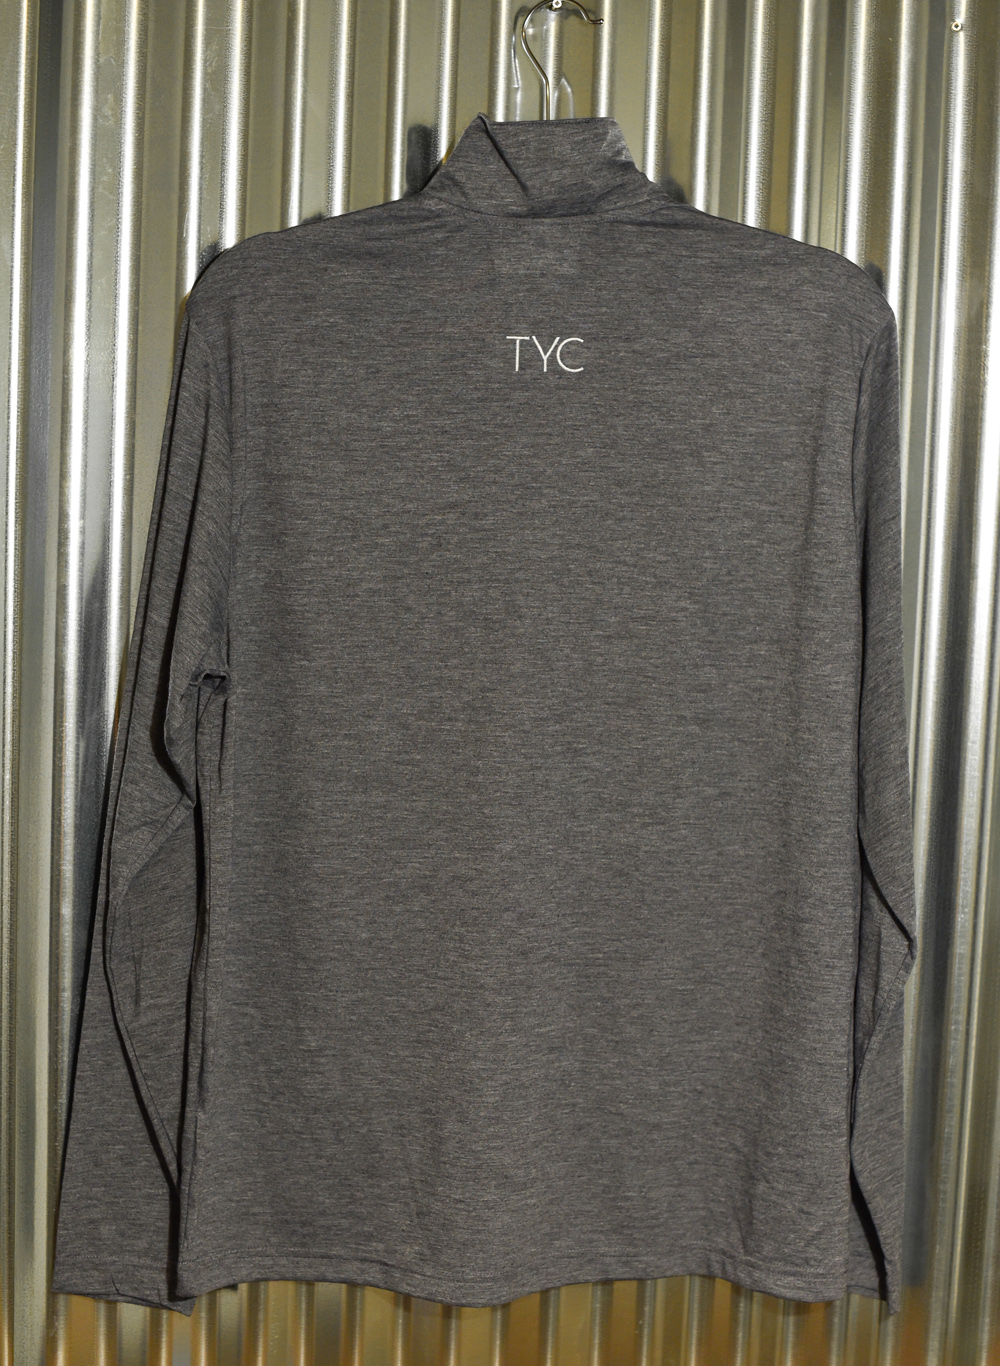 Gray Men's Quarter Zip back embroidered front and back. Back view